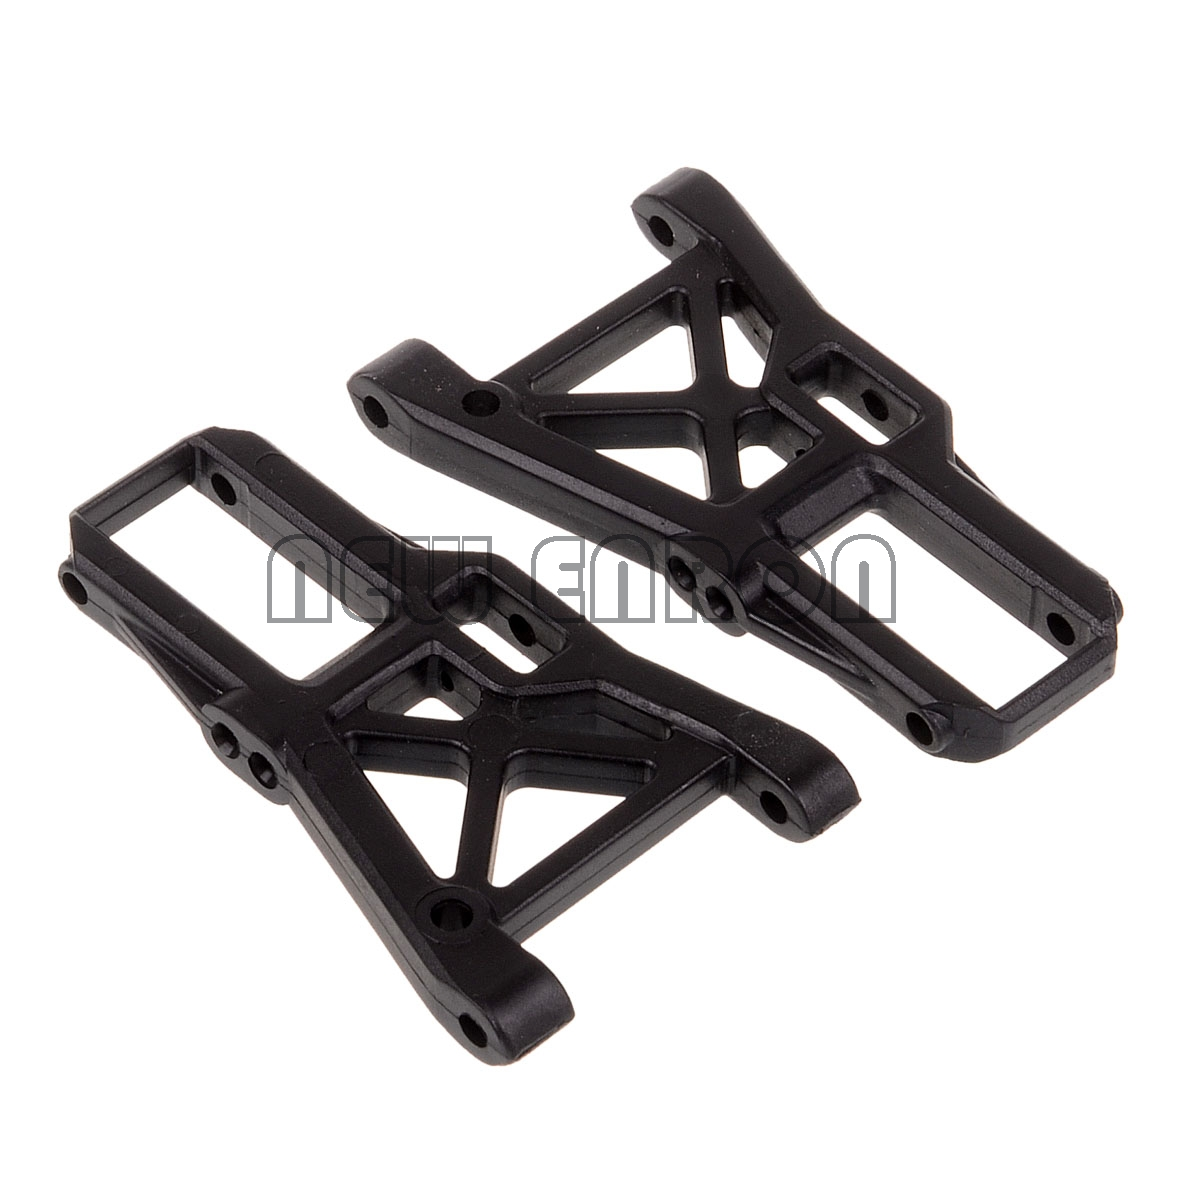 NEW ENRON HSP 02008 Front Lower Suspension Arm For 1/10 RC 4WD Model Car Spare Parts